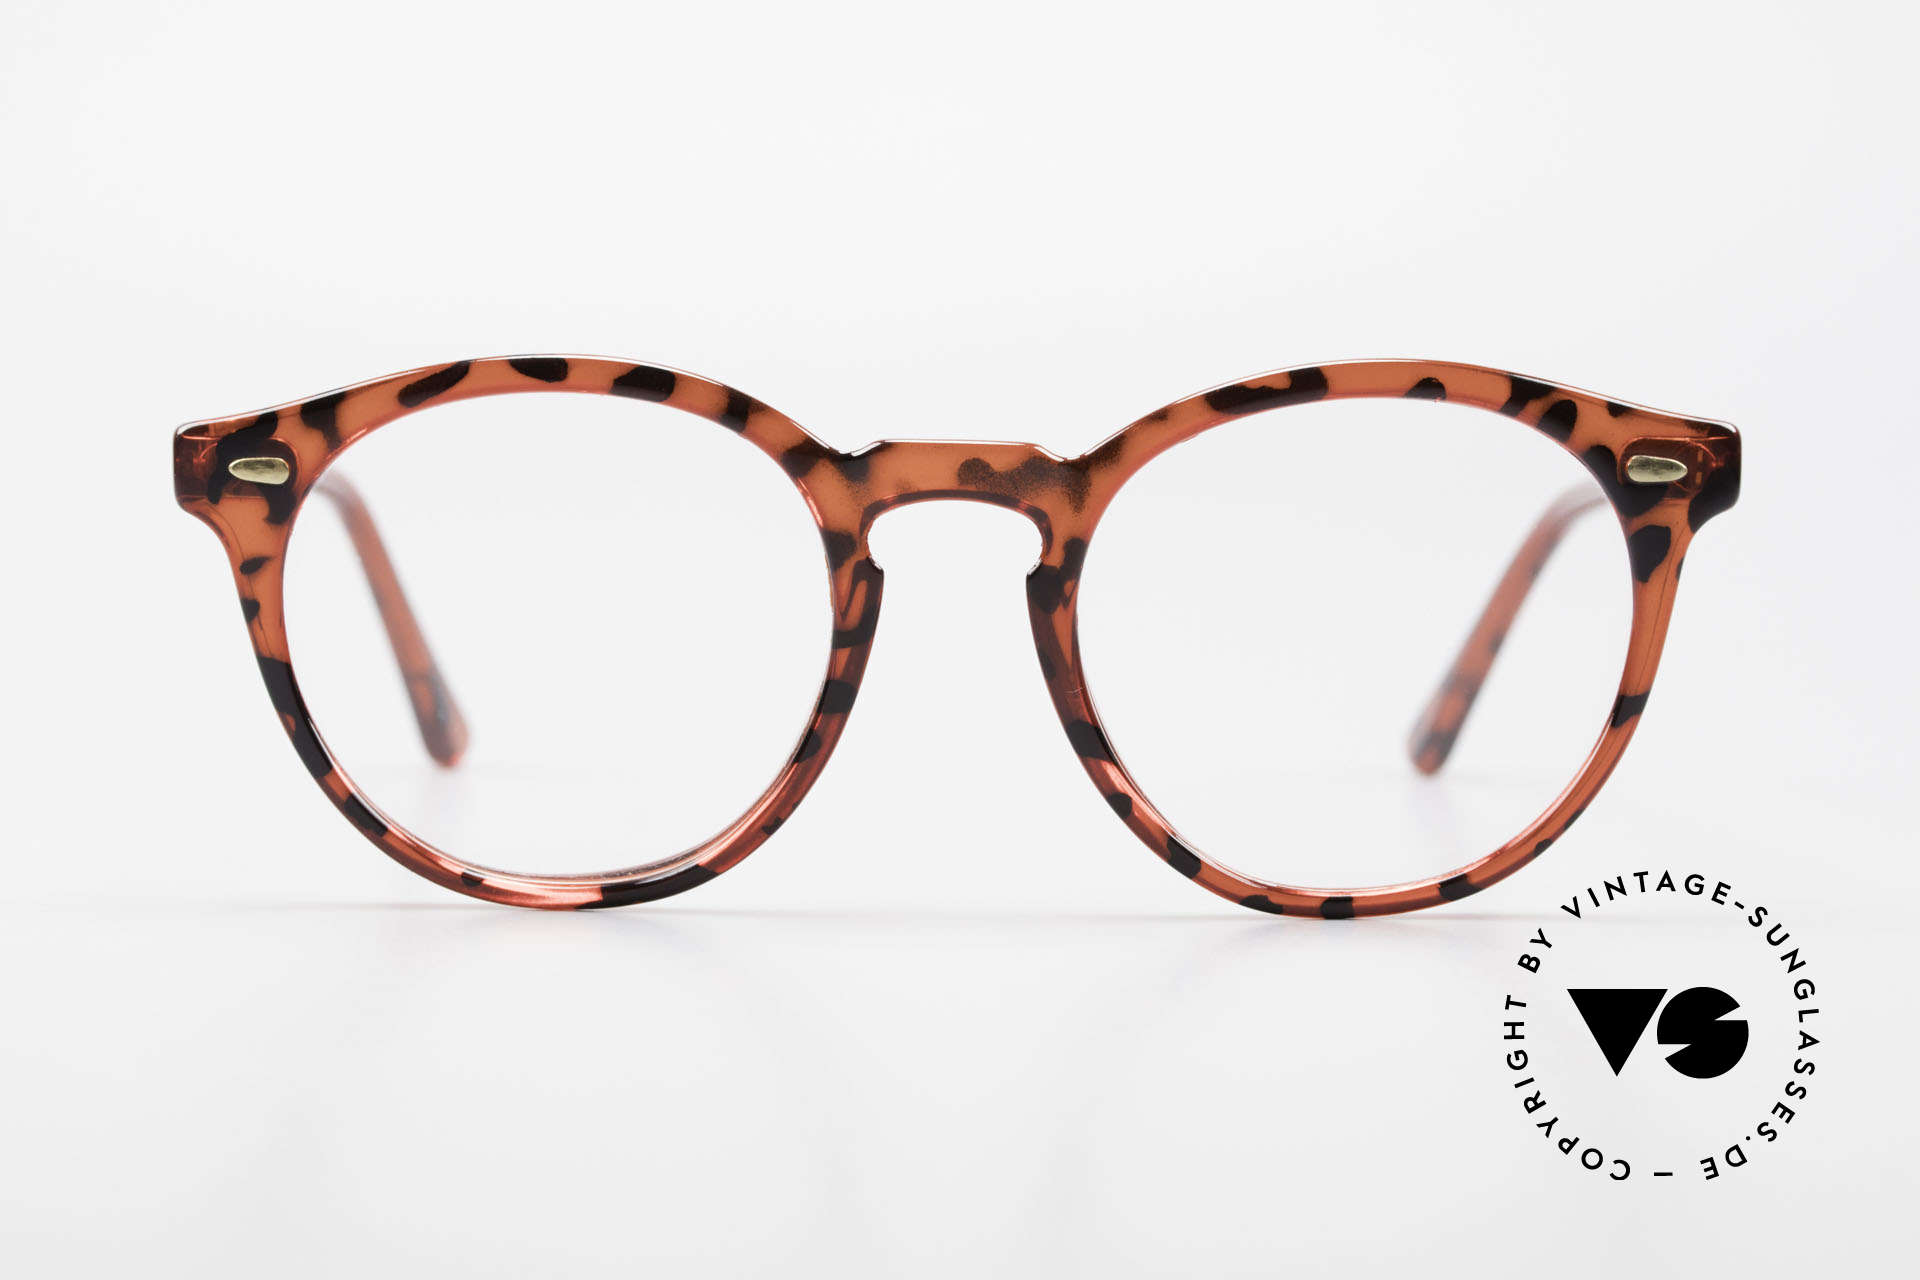 Carrera 5256 Clip Panto Frame Johnny Depp Style, Size: small, Made for Men and Women